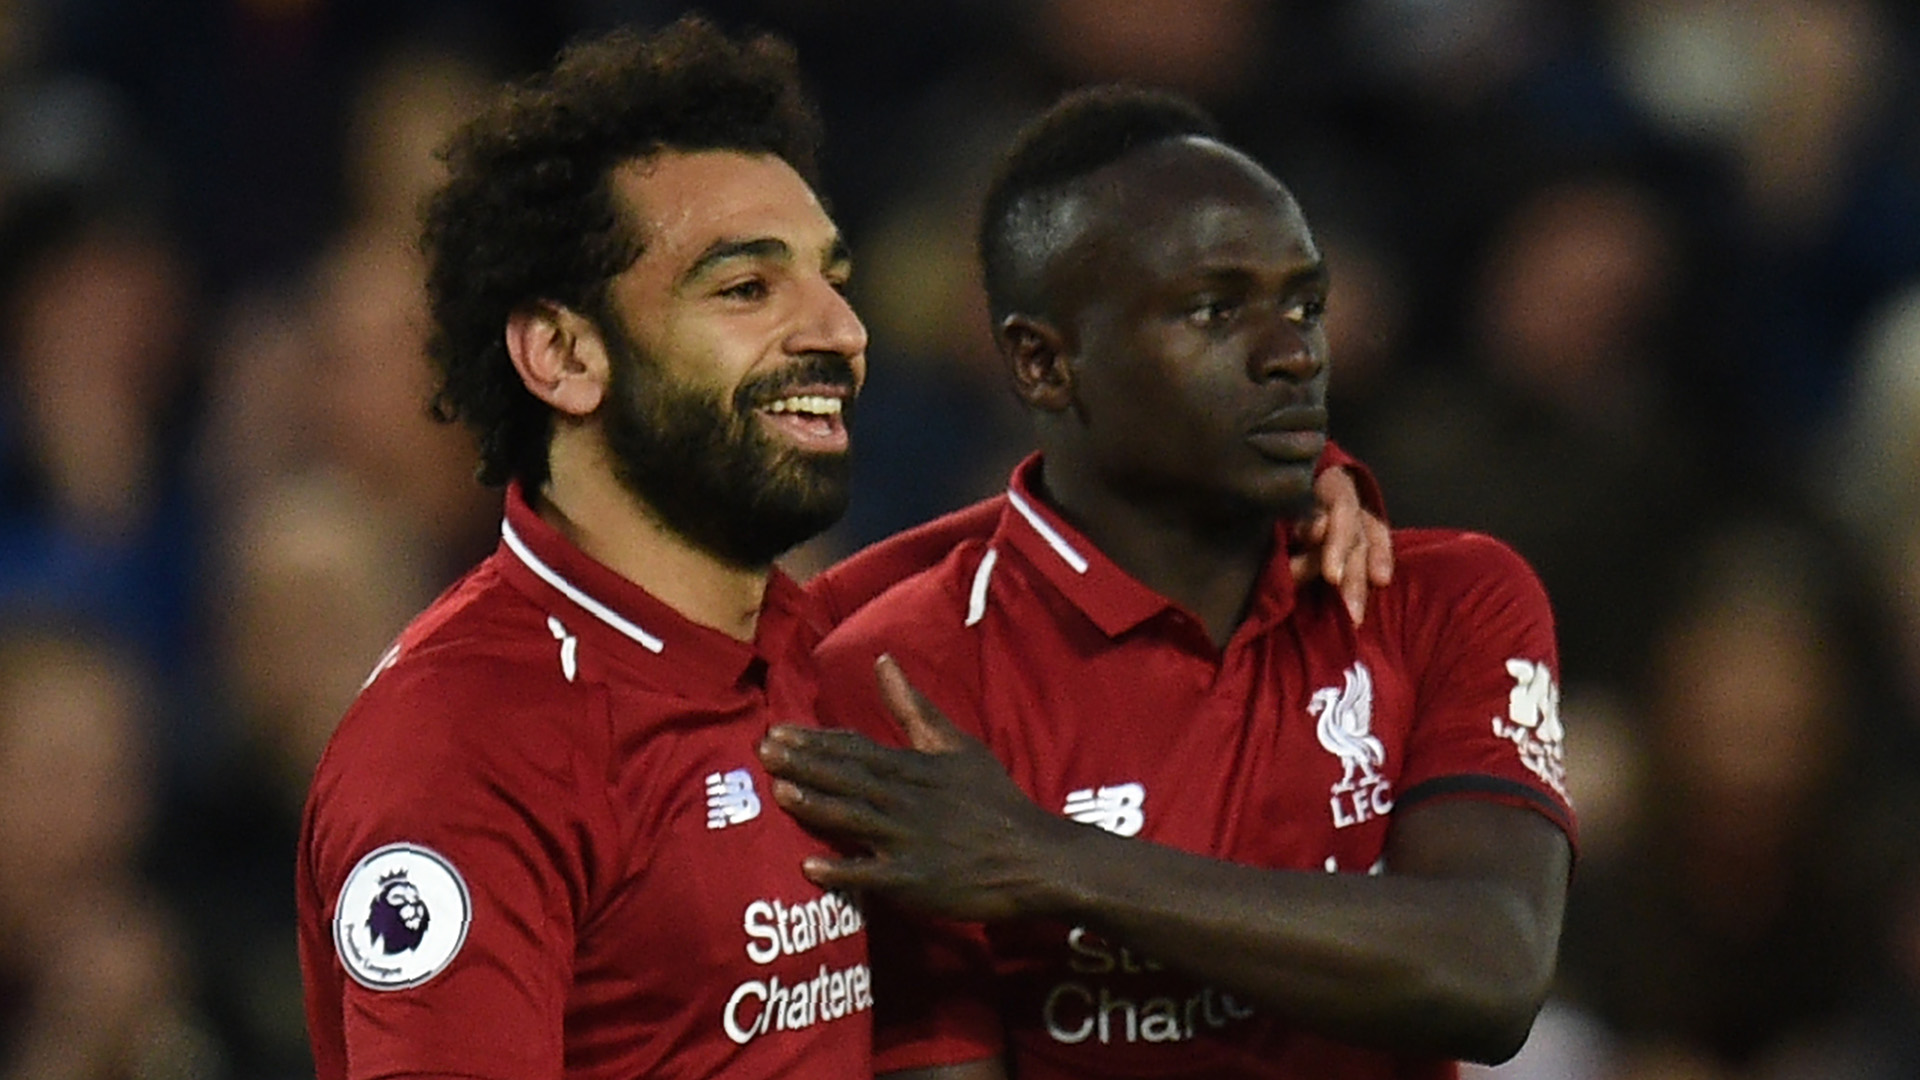 'Liverpool were better last year' – Barnes says Champions League winners superior to Premier League champs